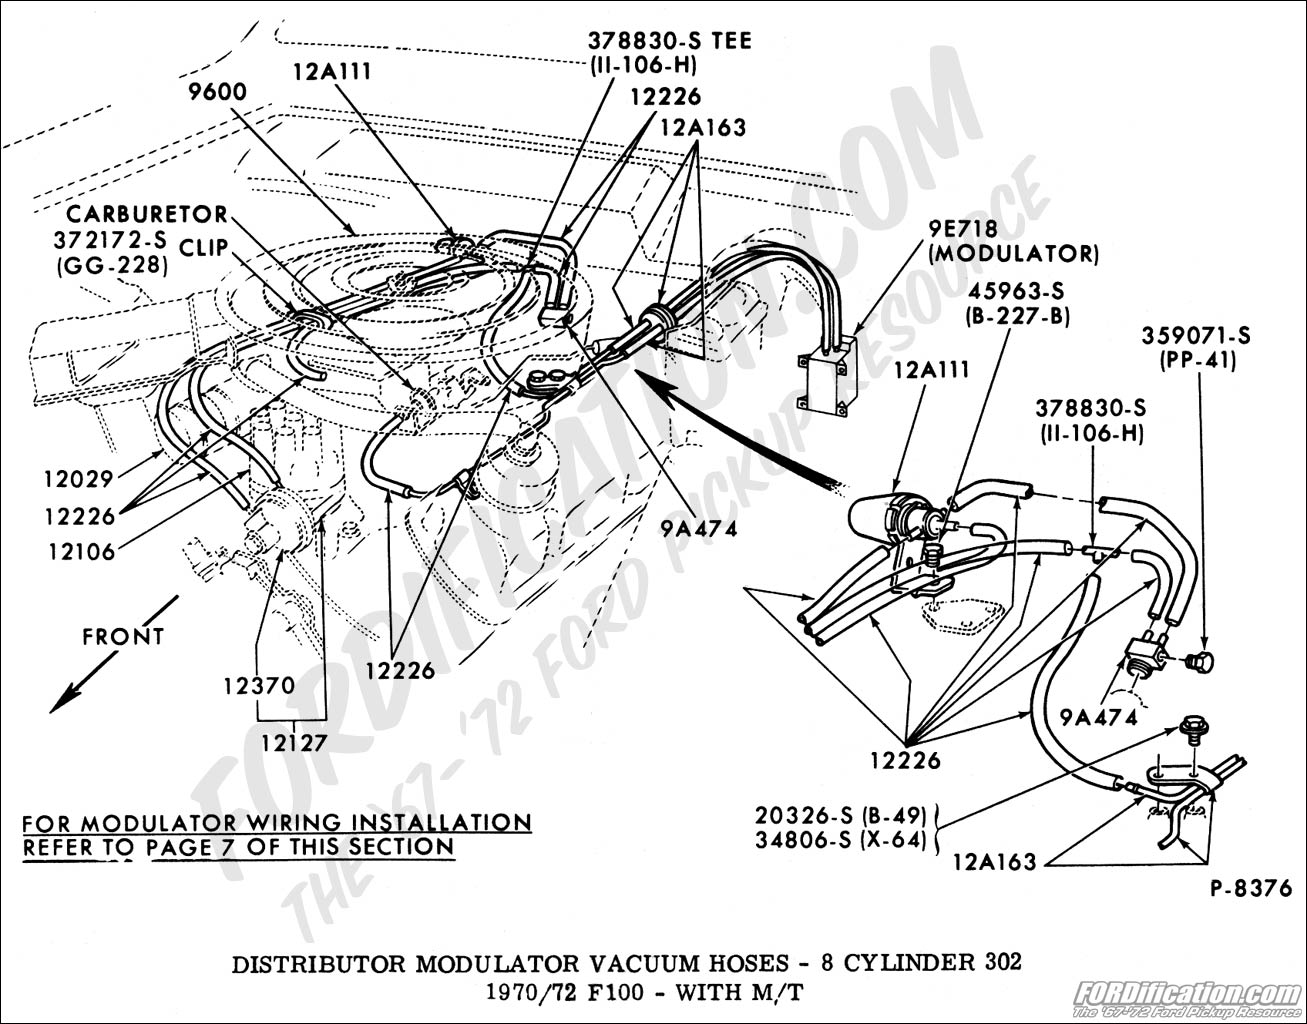 2002 taurus schematics ignition